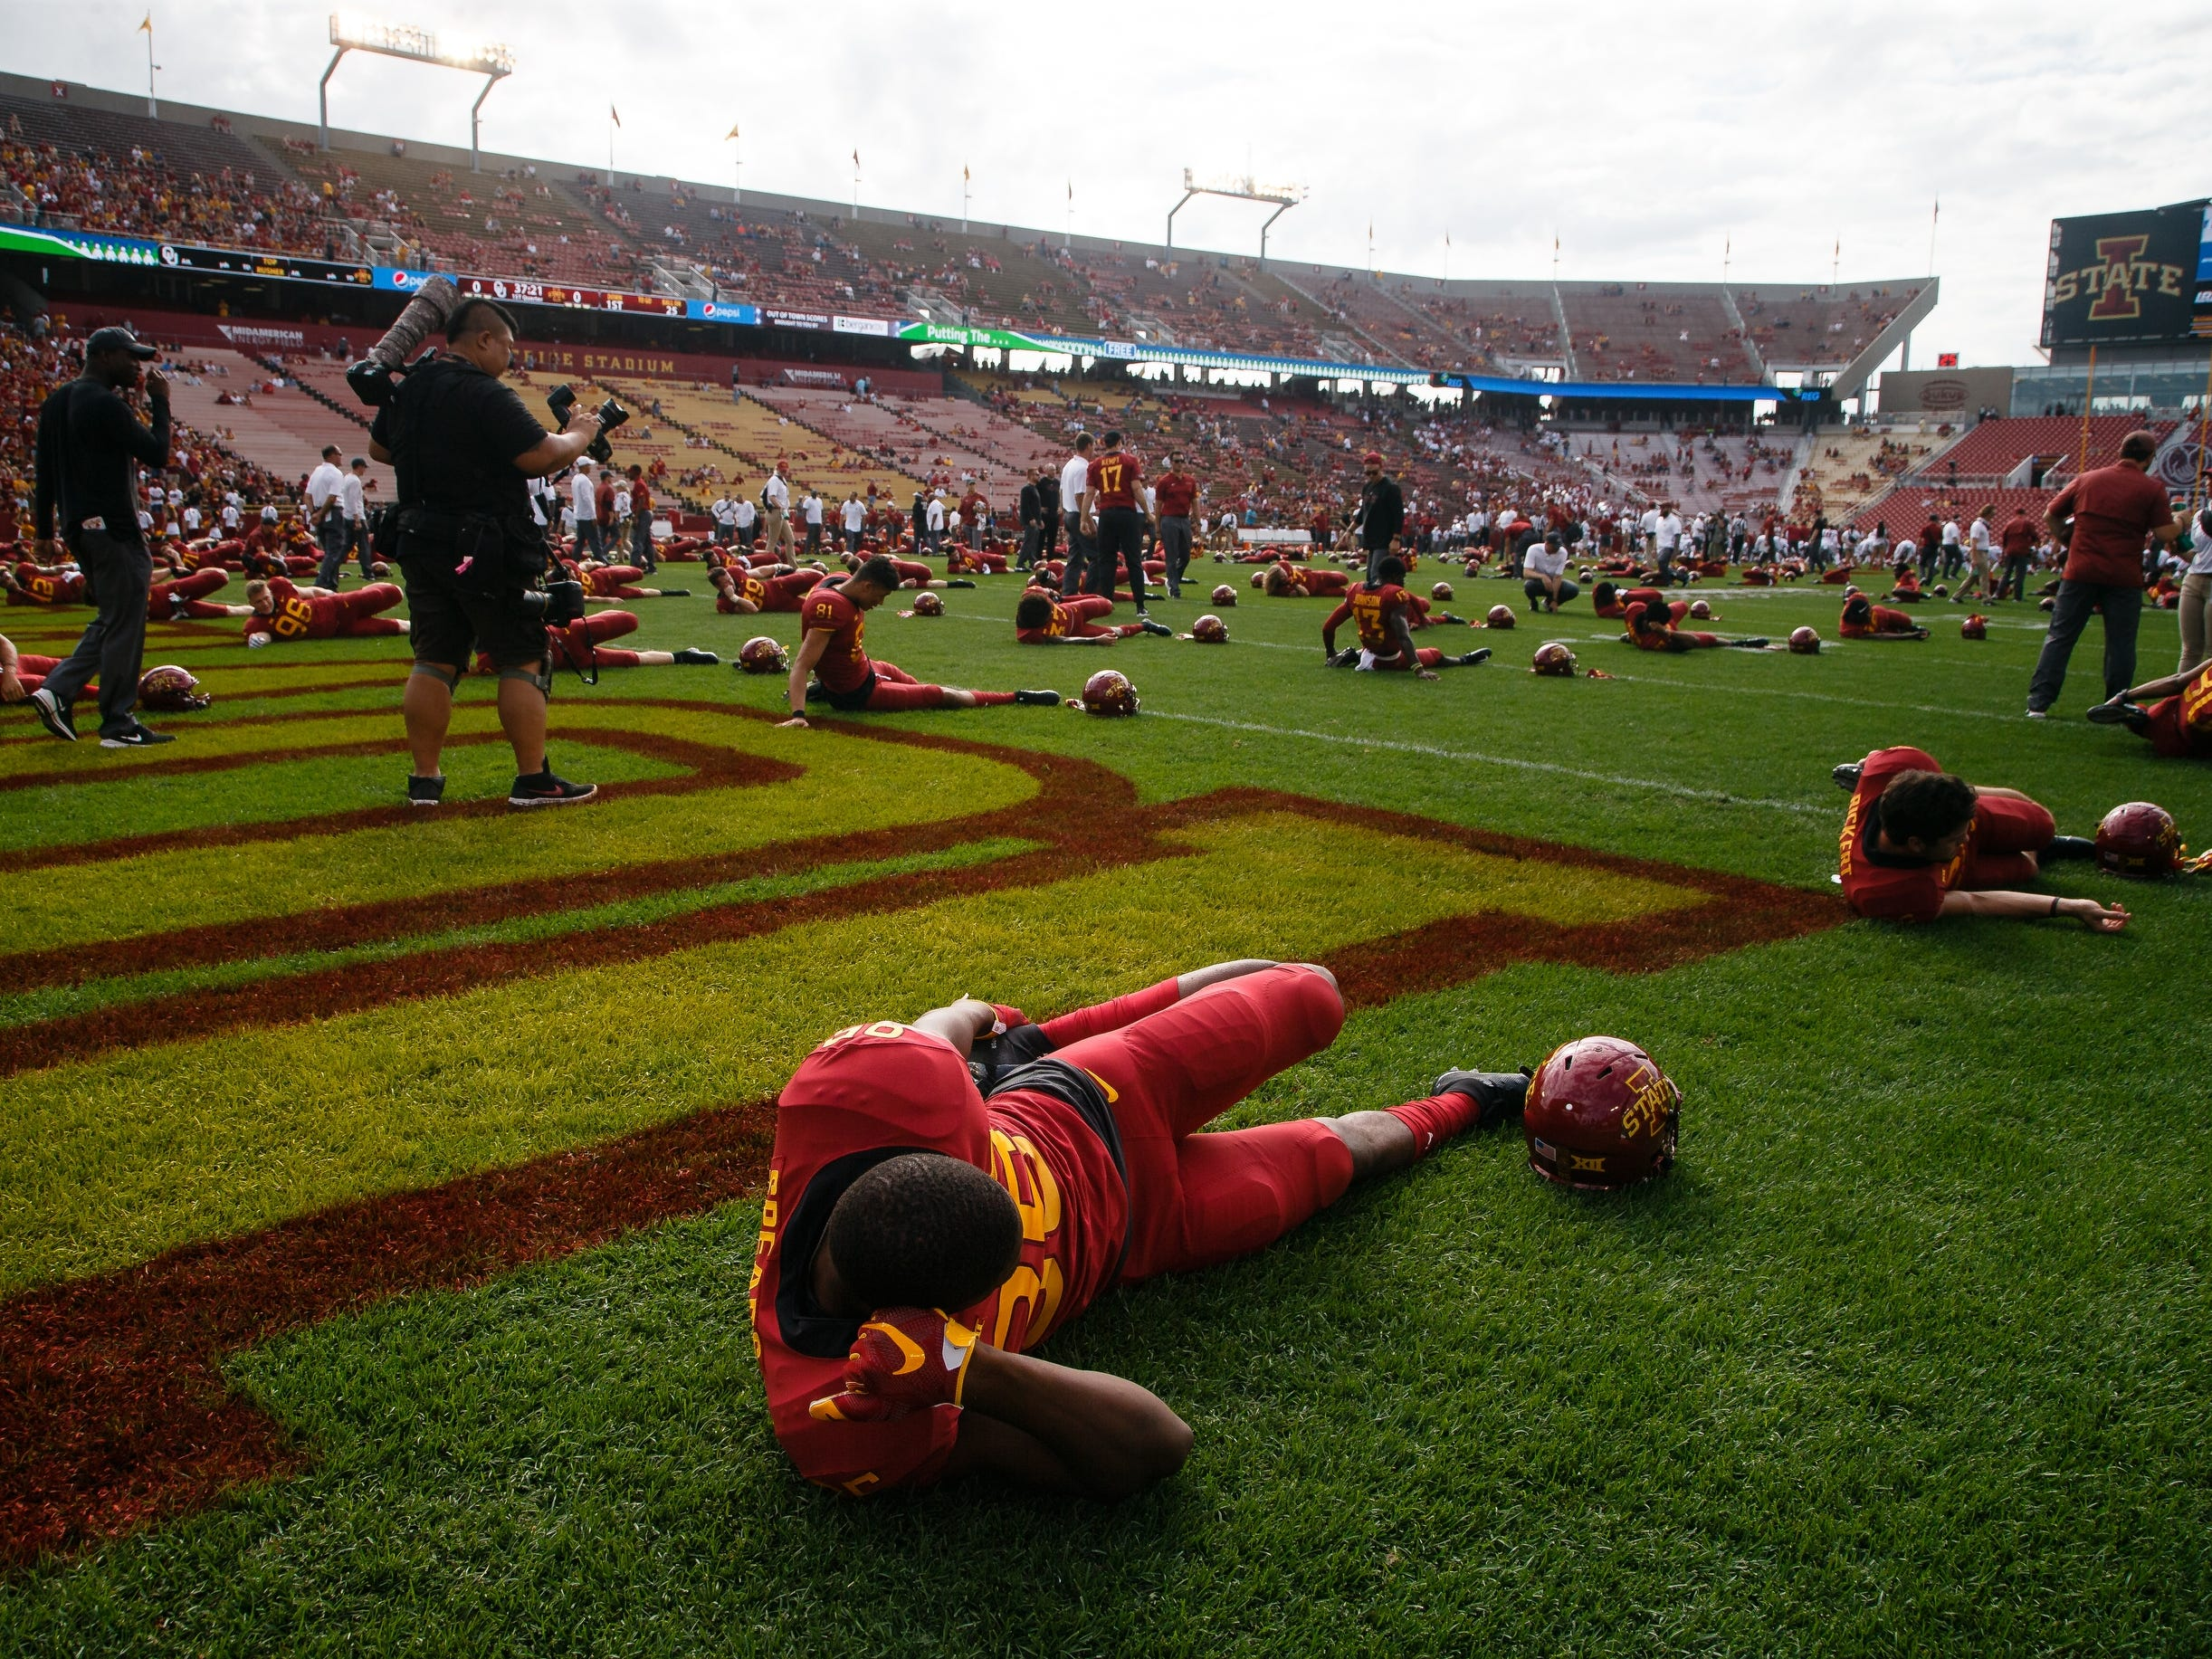 Iowa State players warm up before their football game against Oklahoma at Jack Trice Stadium on Saturday, Sept. 15, 2018 in Ames. Oklahoma takes a 24-10 lead into halftime.